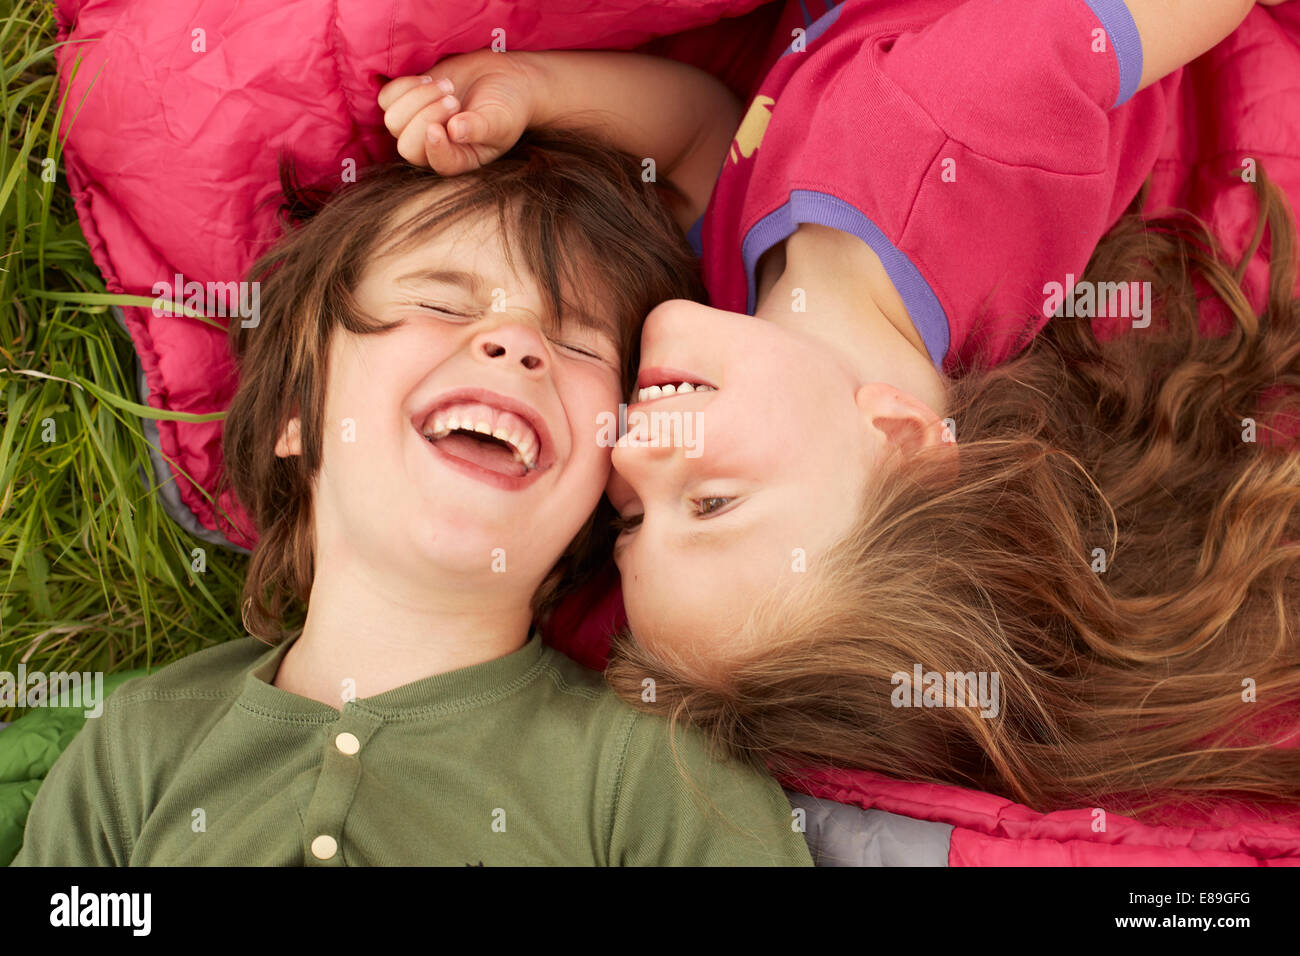 Boy and Girl laughing while laying on sleeping bags - Stock Image